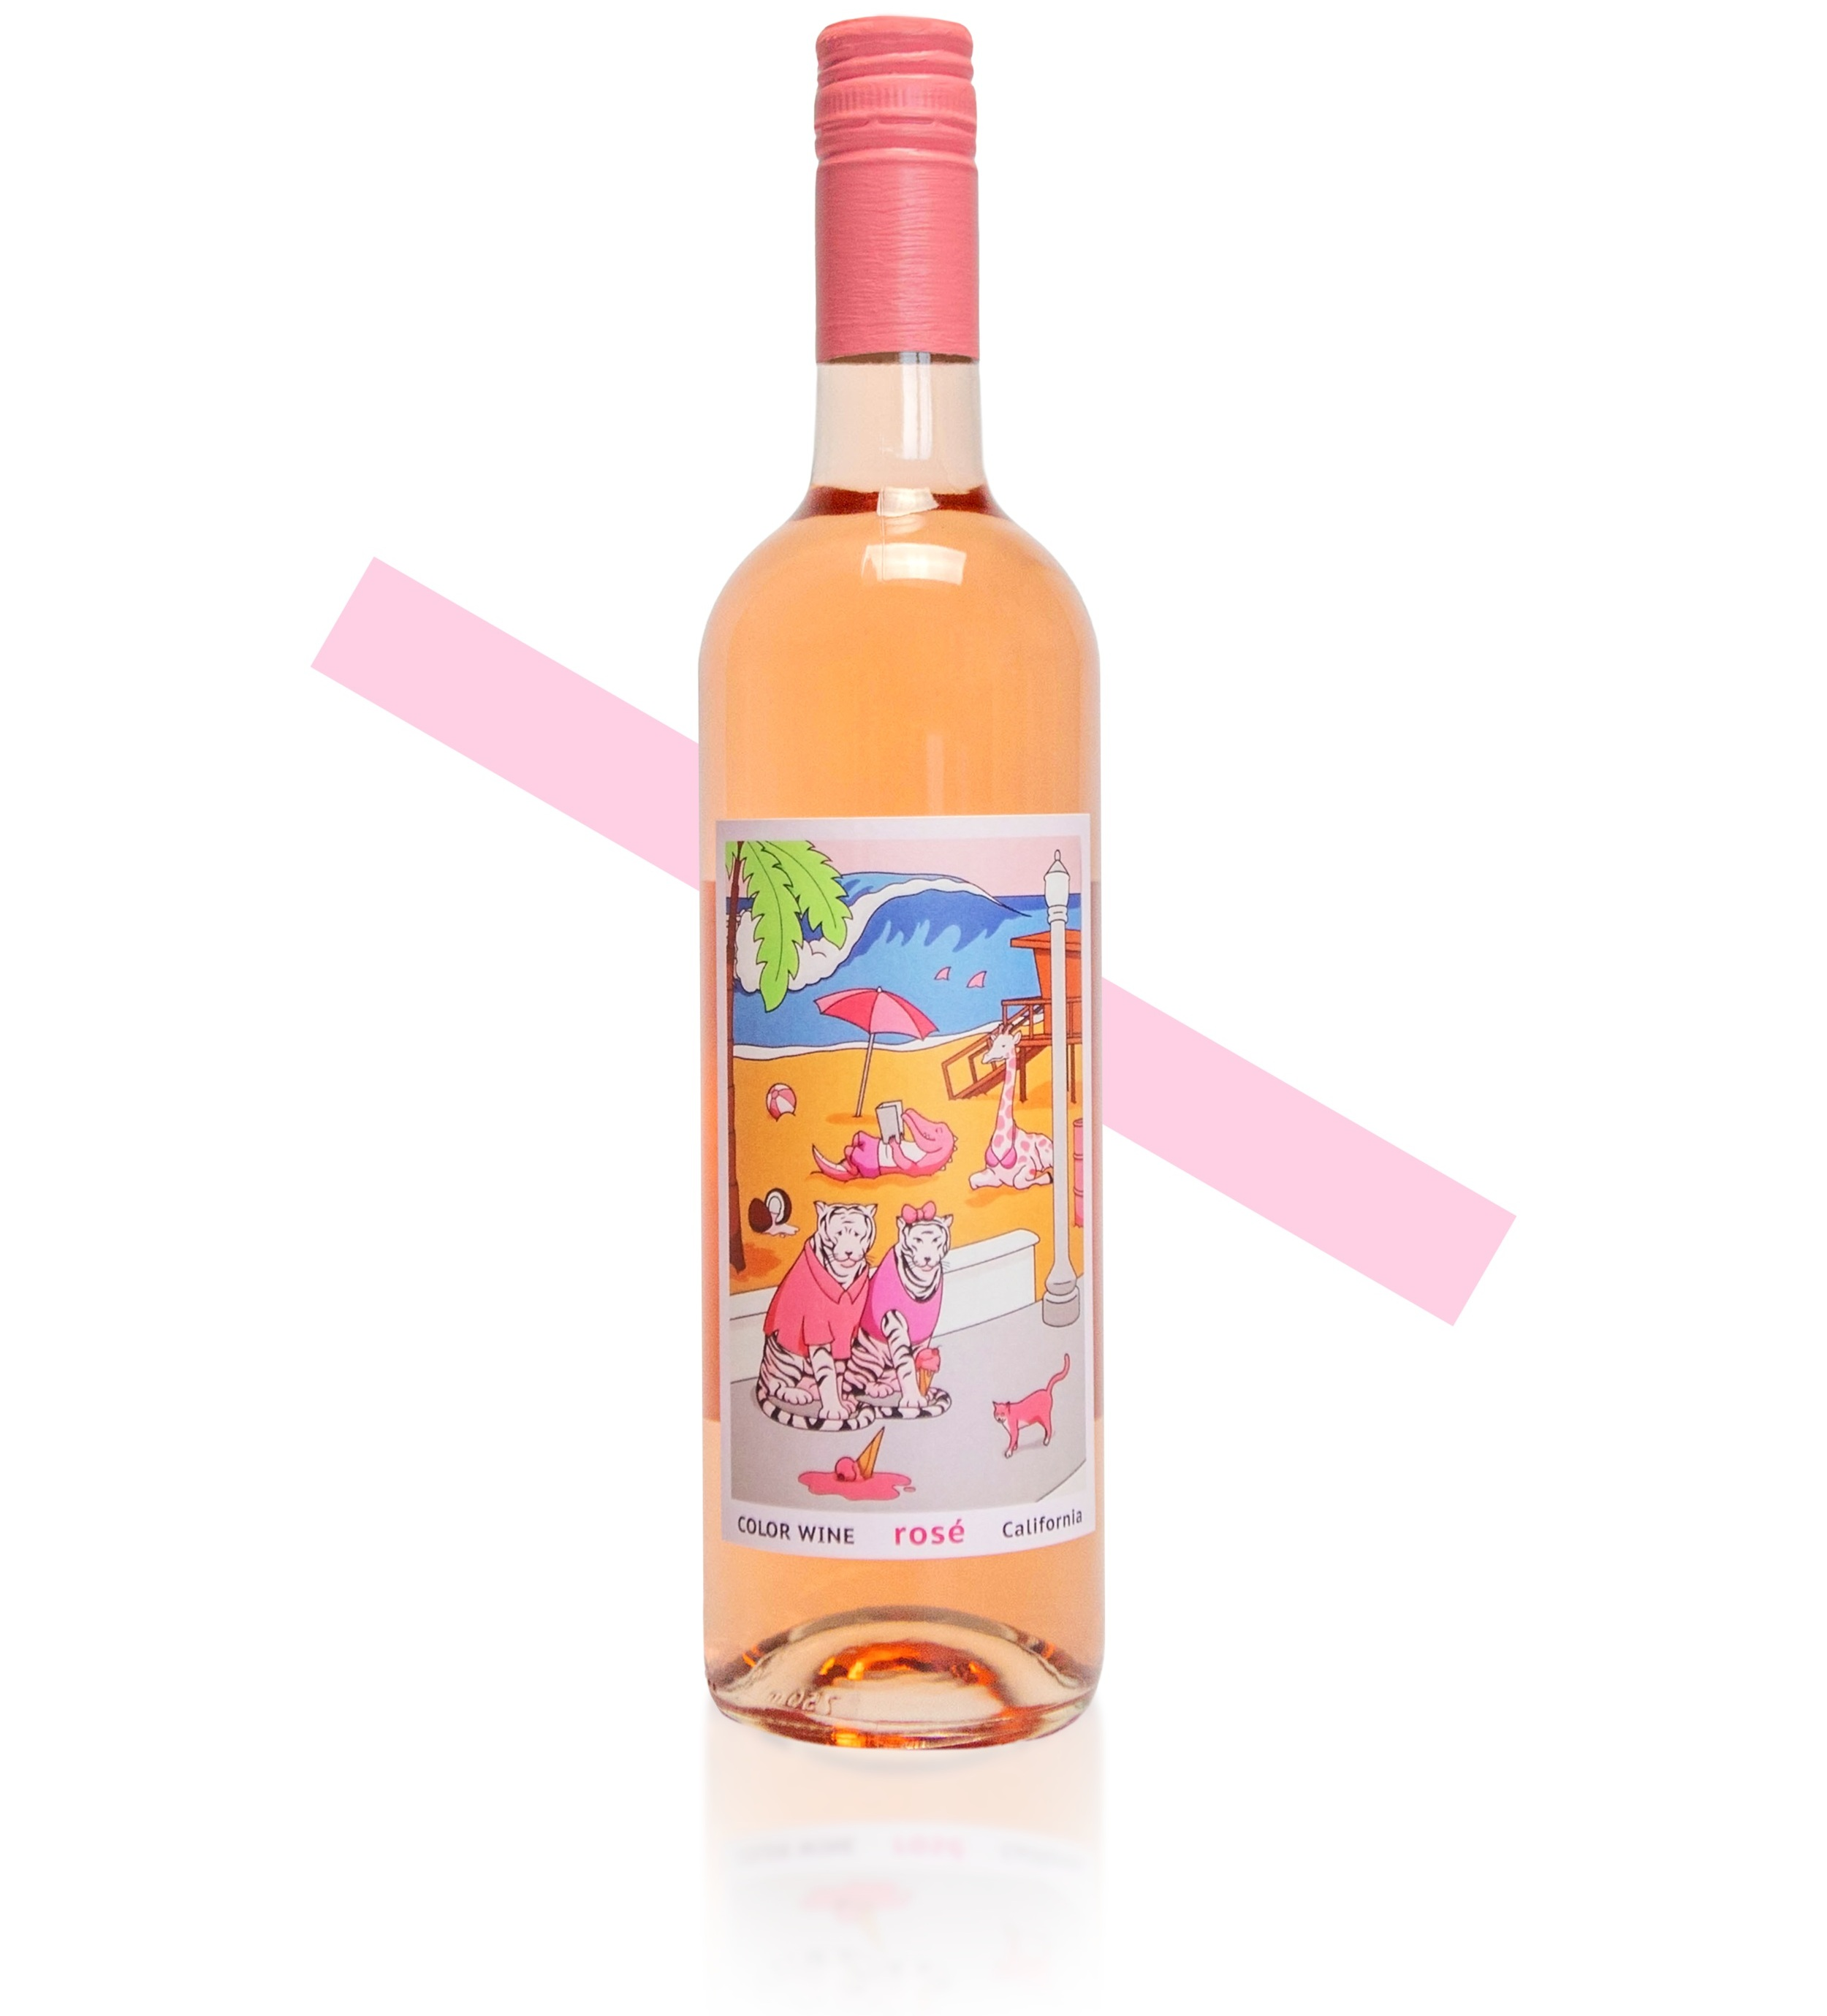 $15 rosé - Best Enjoyed:Chilled down and served on a boat, at the beach, or by the pool. The Chardonnay is all-time.Our Award-Winning ChardonnayBronze Medal winner at 2017 OC Fair Blind-Taste CompetitionSilver Medal winner at 2018 OC Fair Blind-Taste Competition